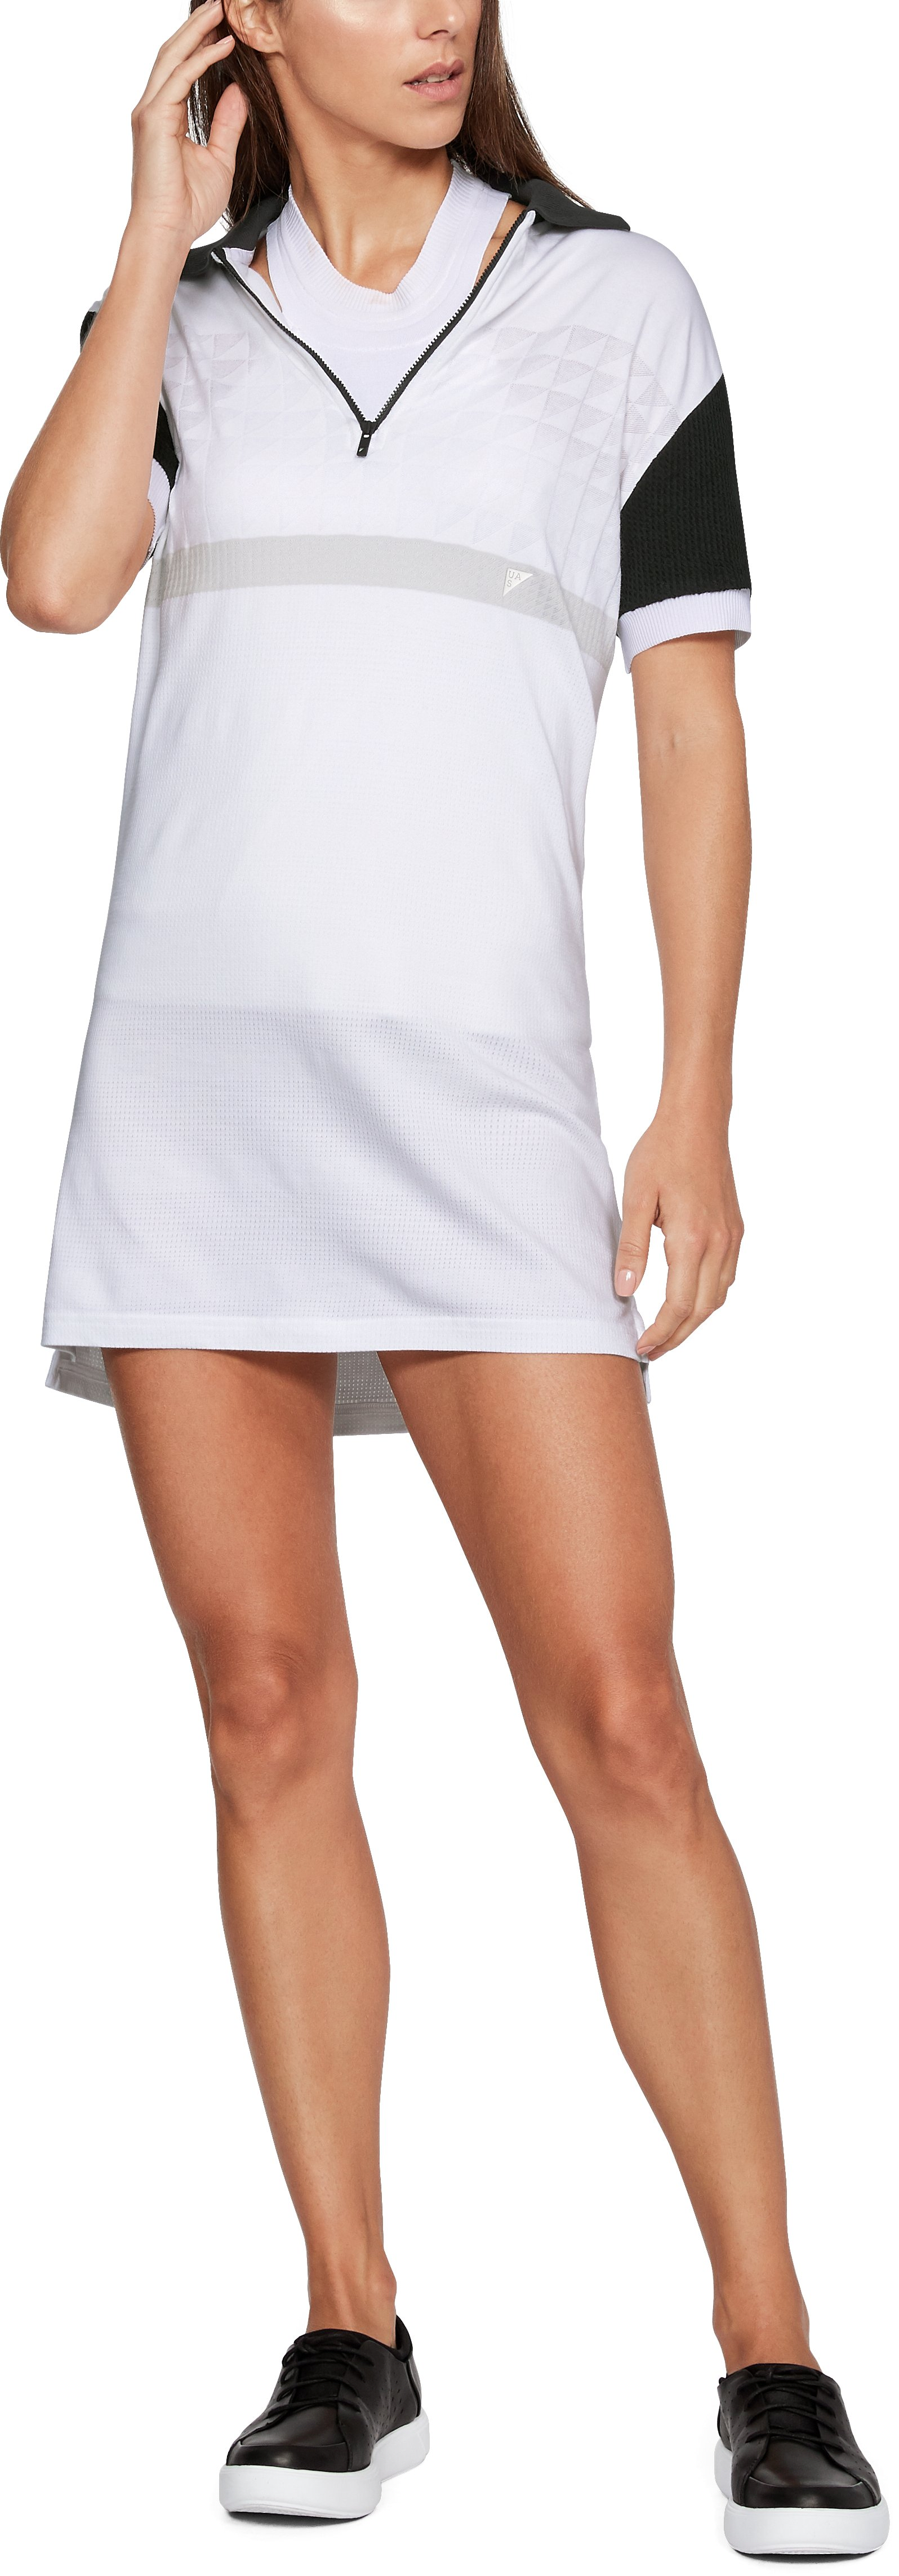 Women's UAS Delta Polo Dress, White,